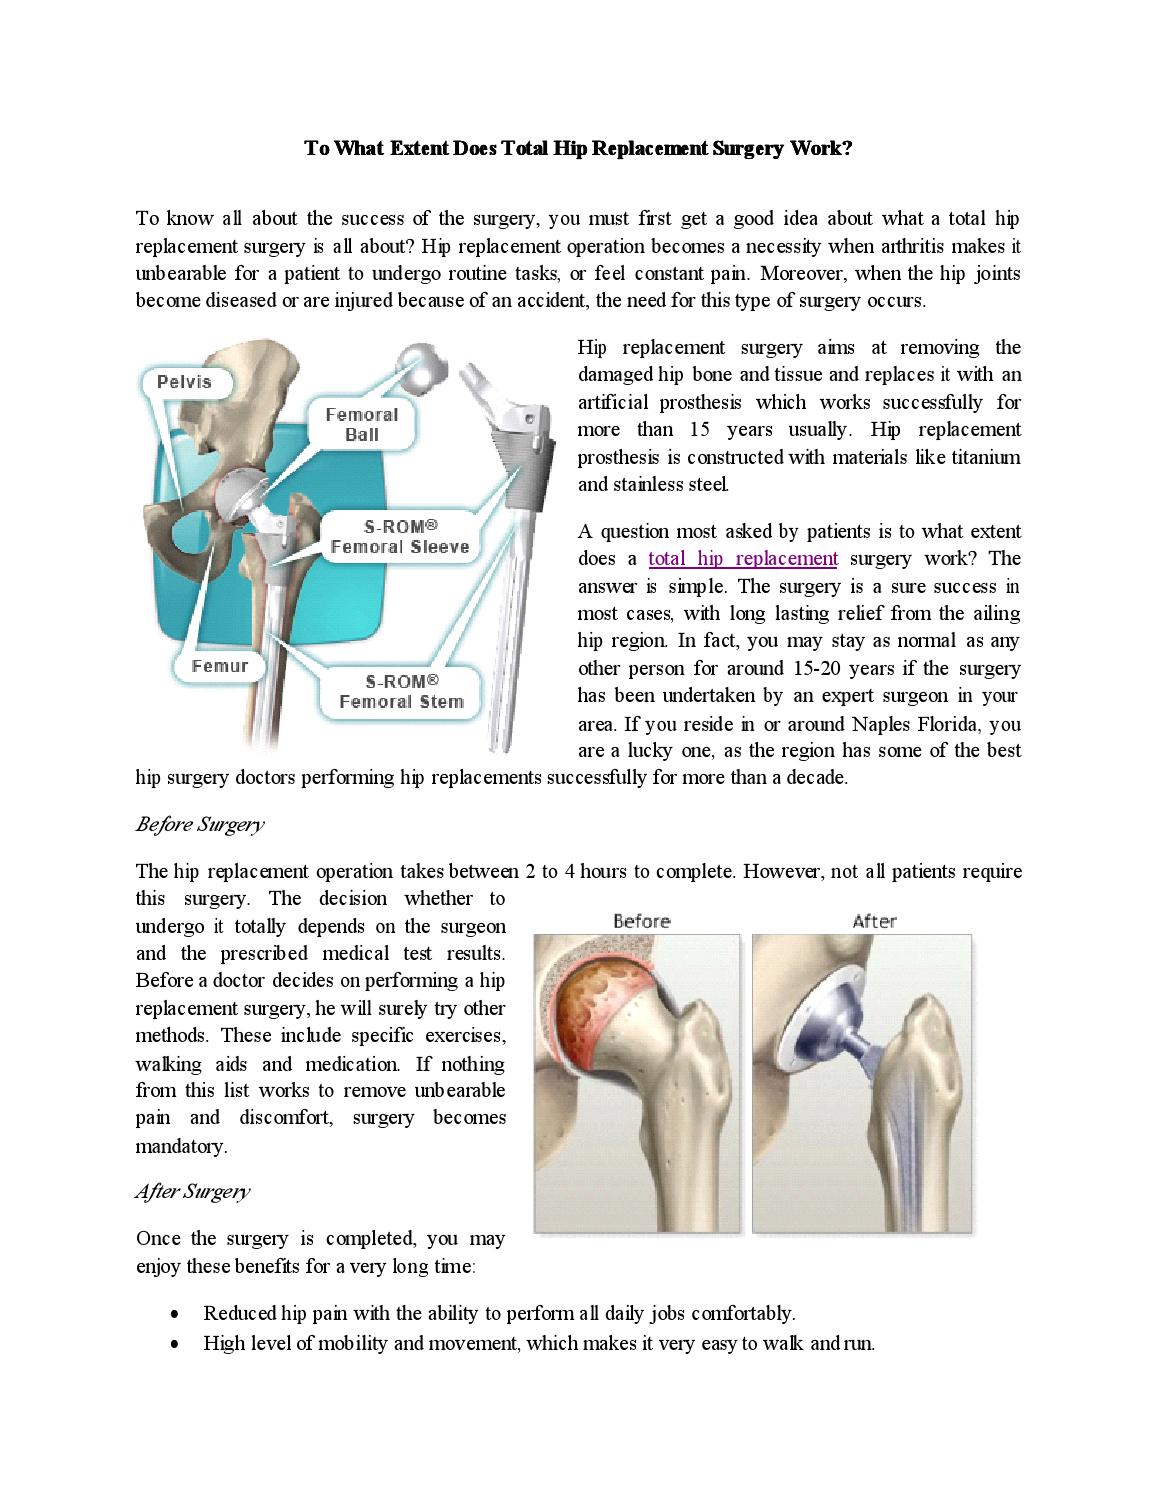 To what extent does total hip replacement surgery work by